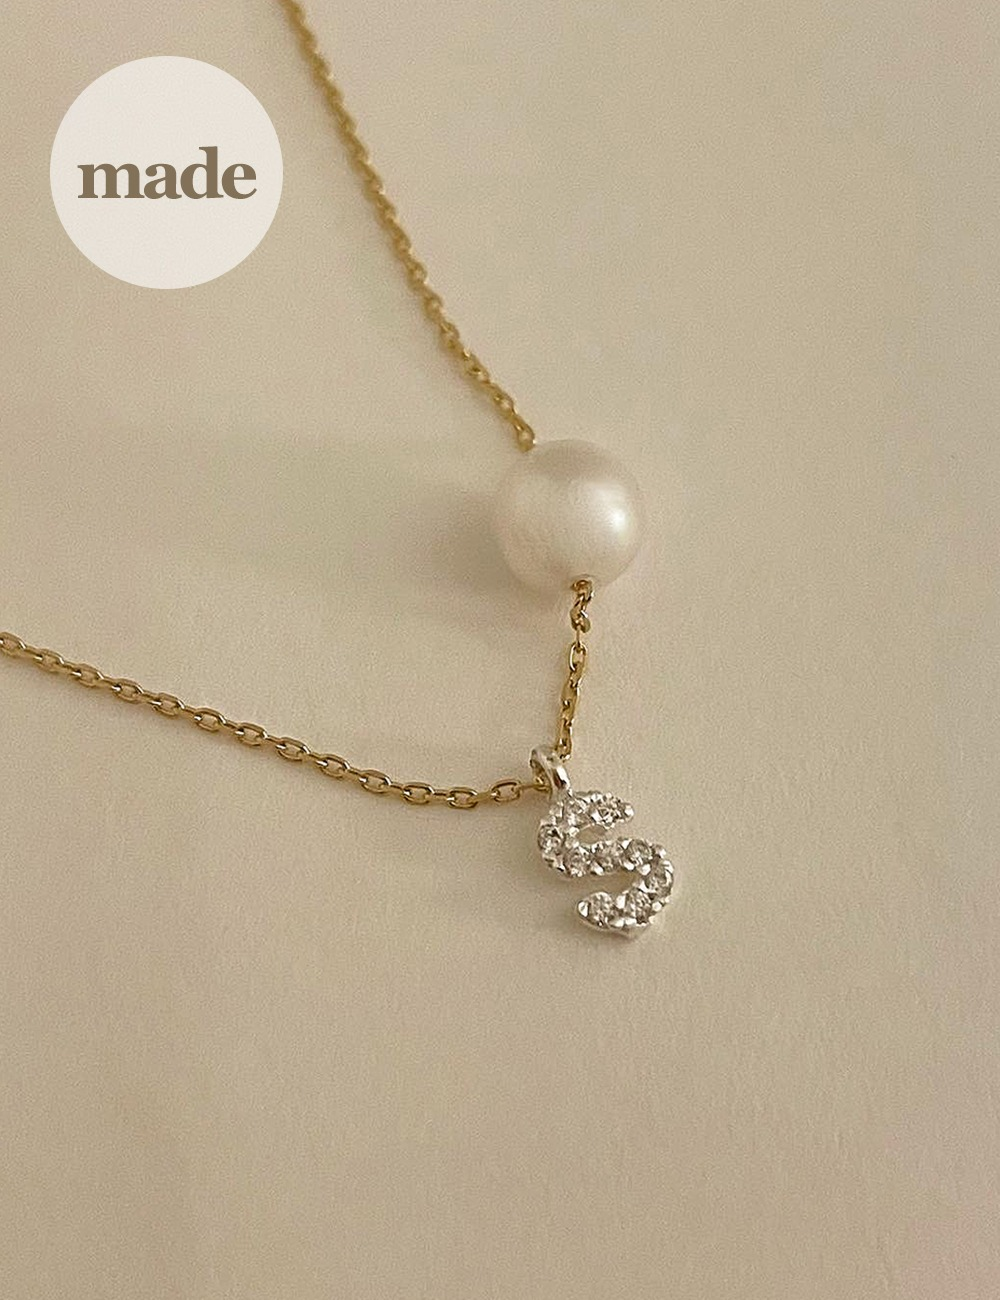 (silver 92.5) Pearl cubic initial necklace / gleamme made